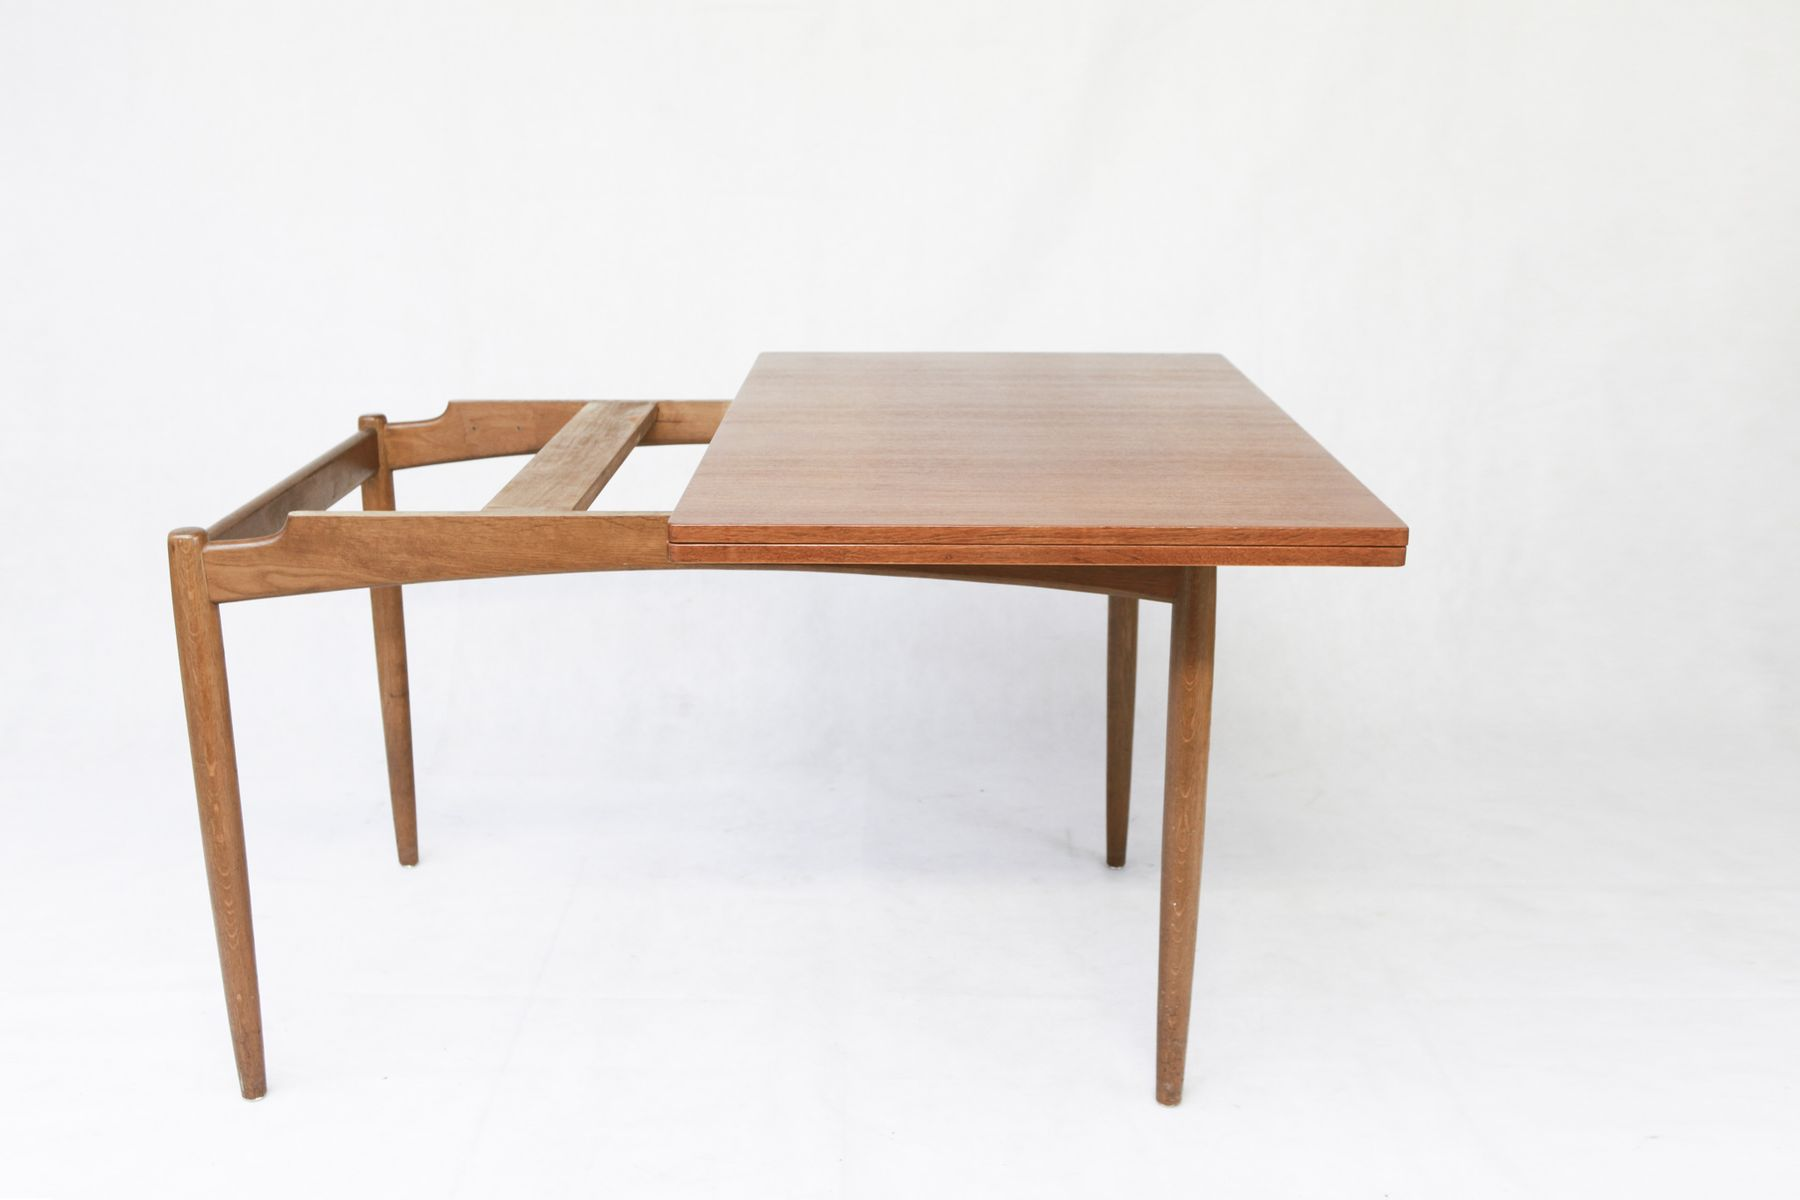 Vintage scandinavian extendable teak dining table for sale at pamono - Scandinavian style dining table ...